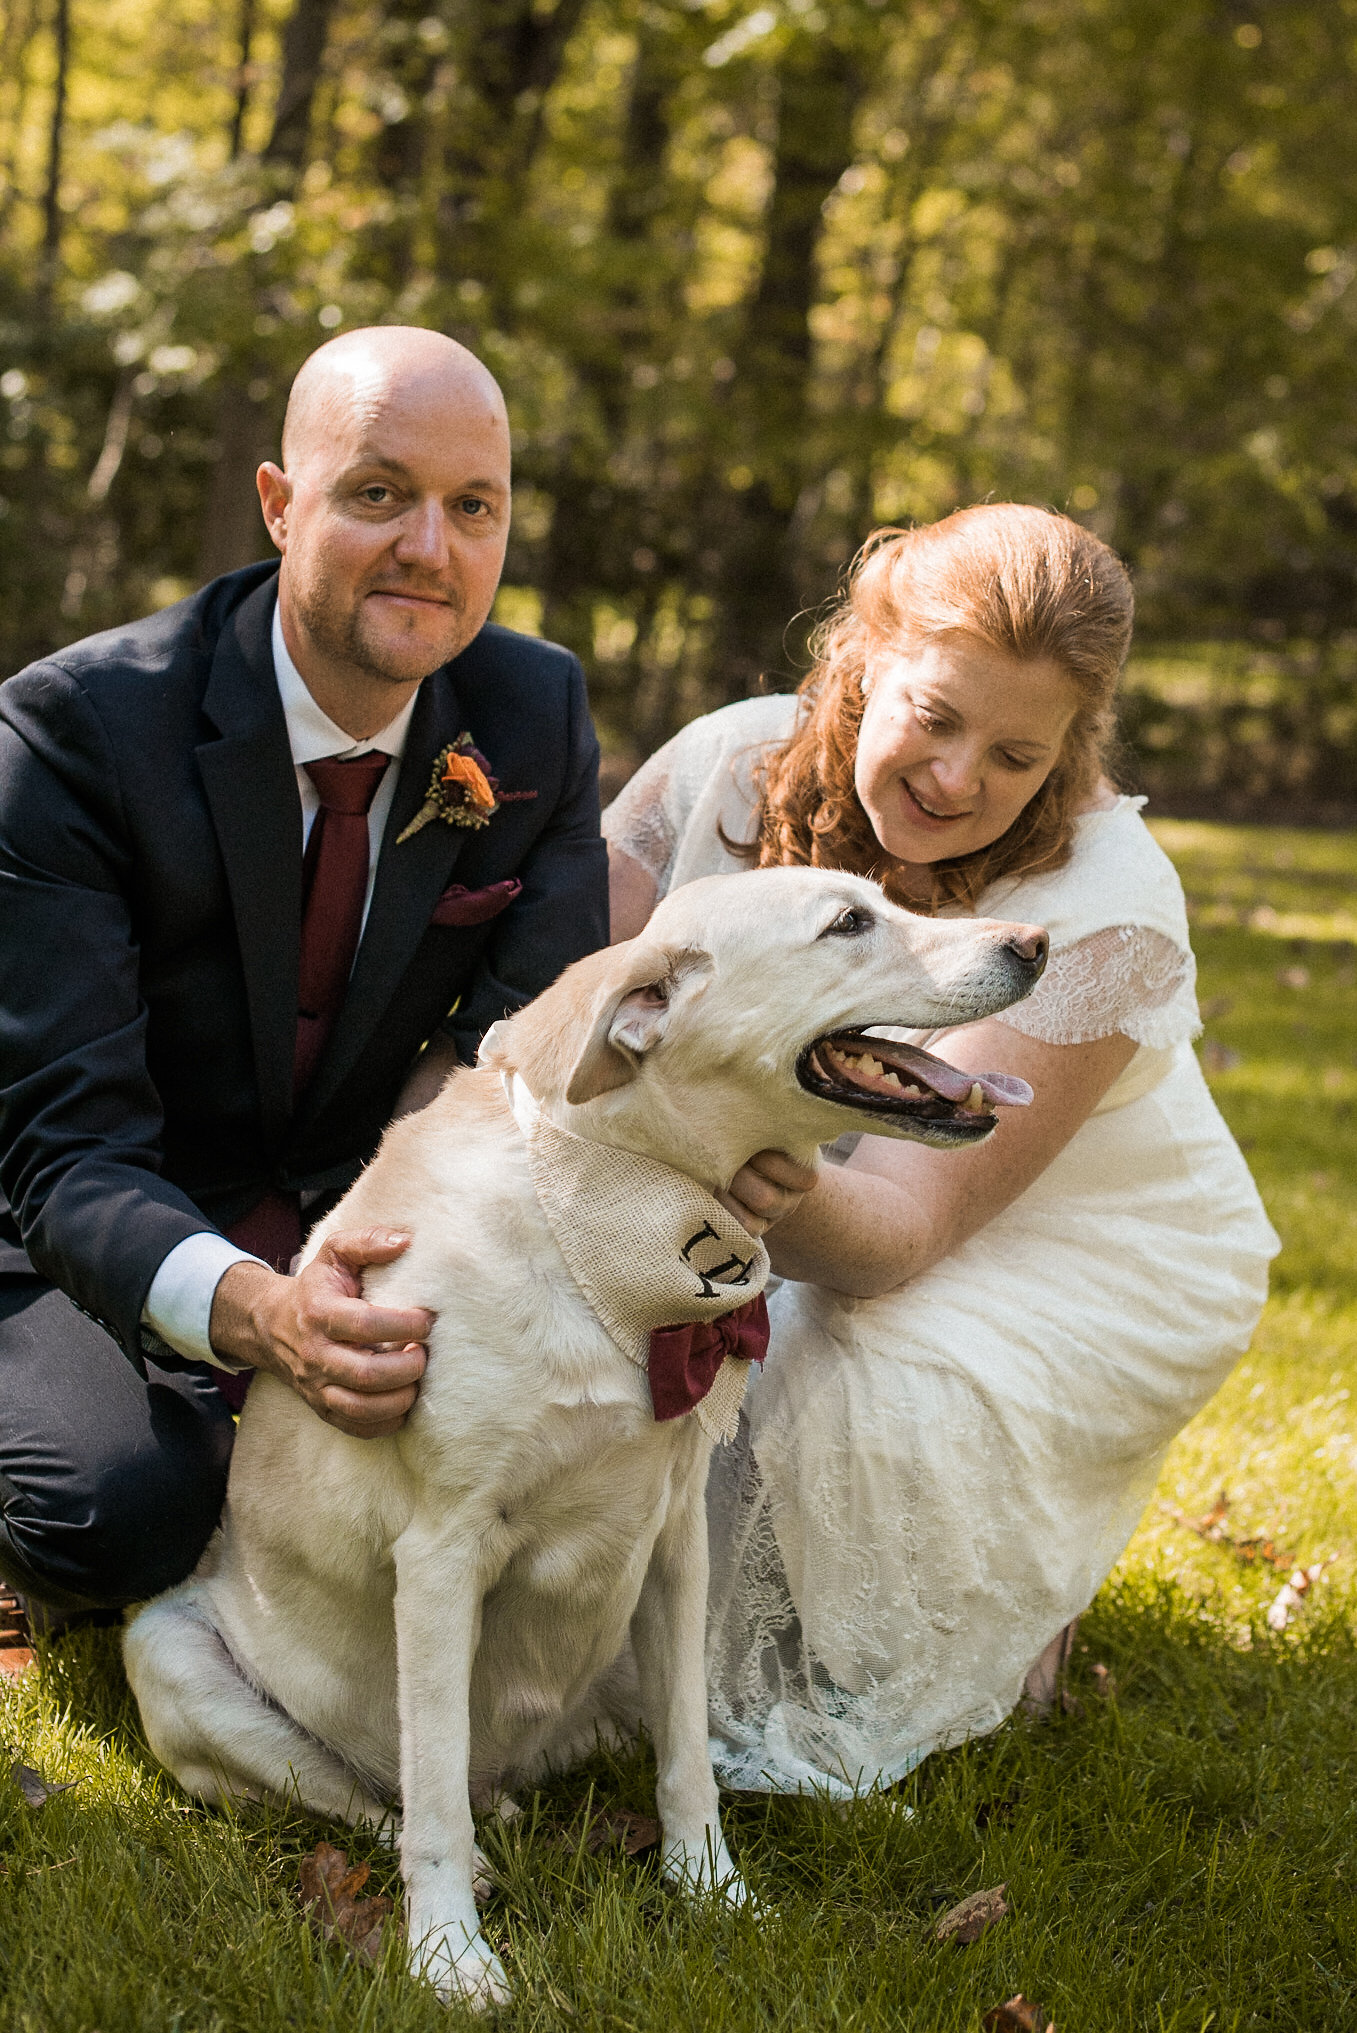 Bride and groom petting dog